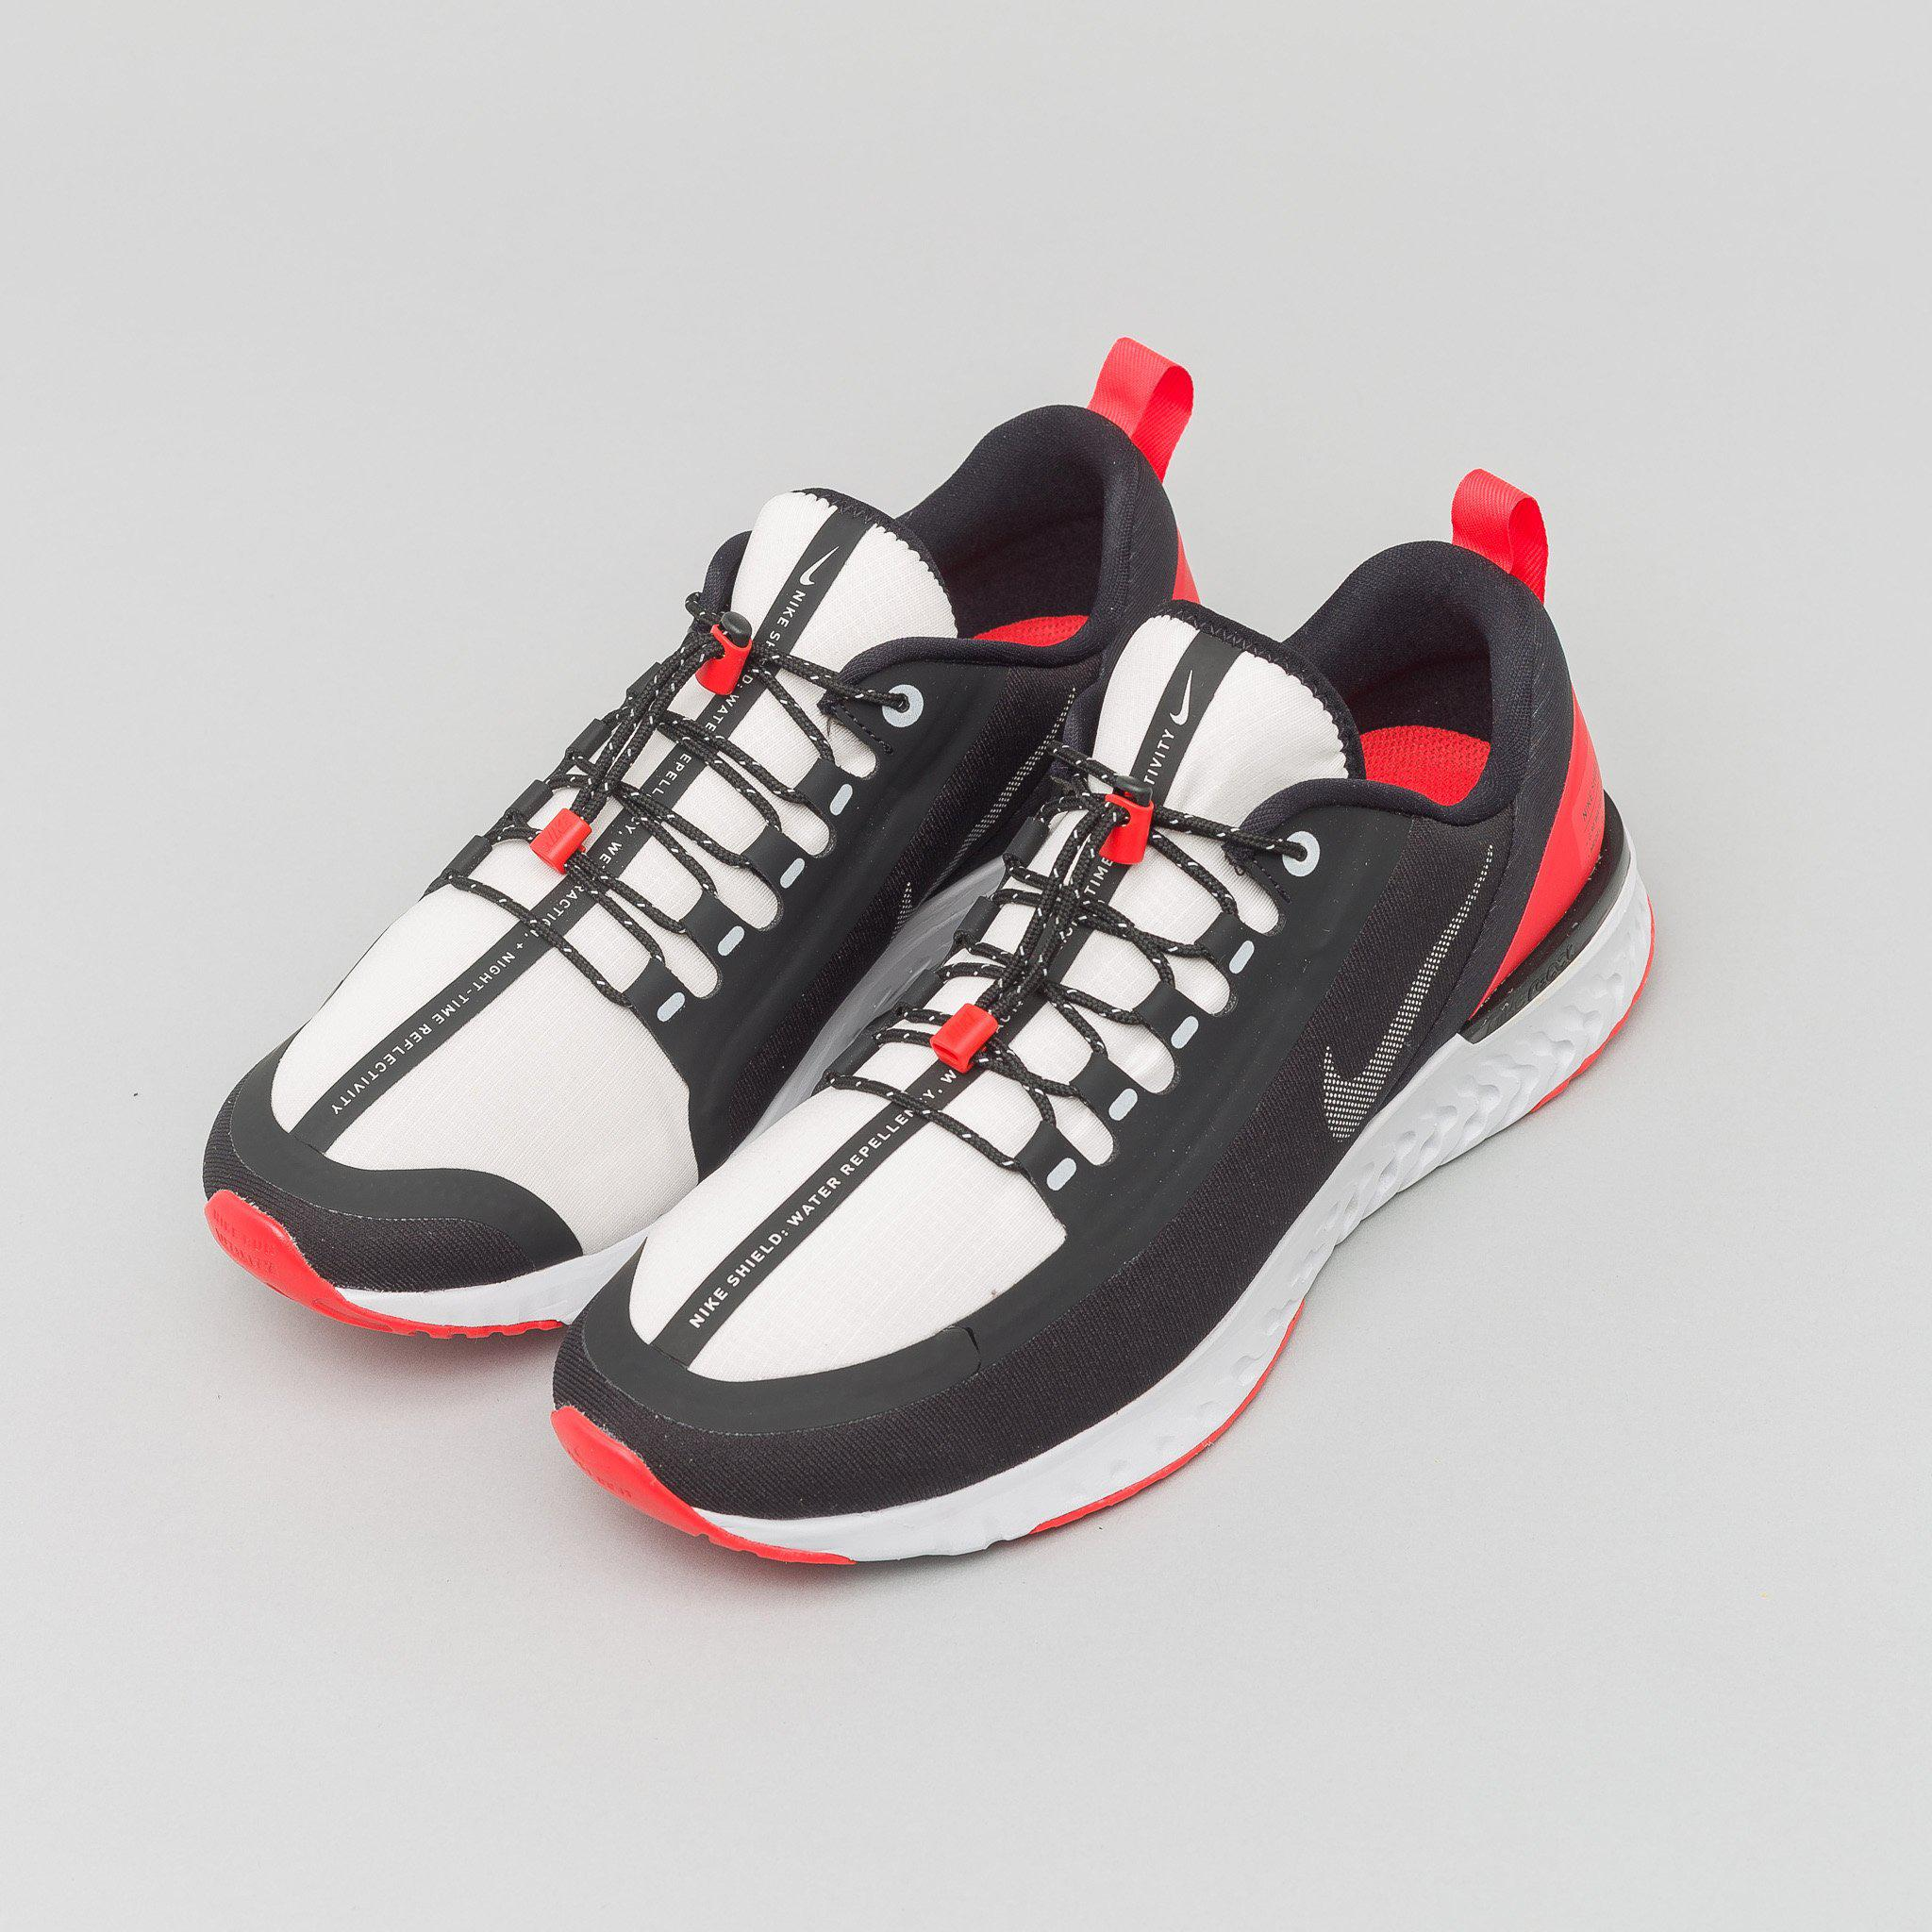 new style a61d5 747dc Men's Odyssey React Shield Nrg In Black/silver/red